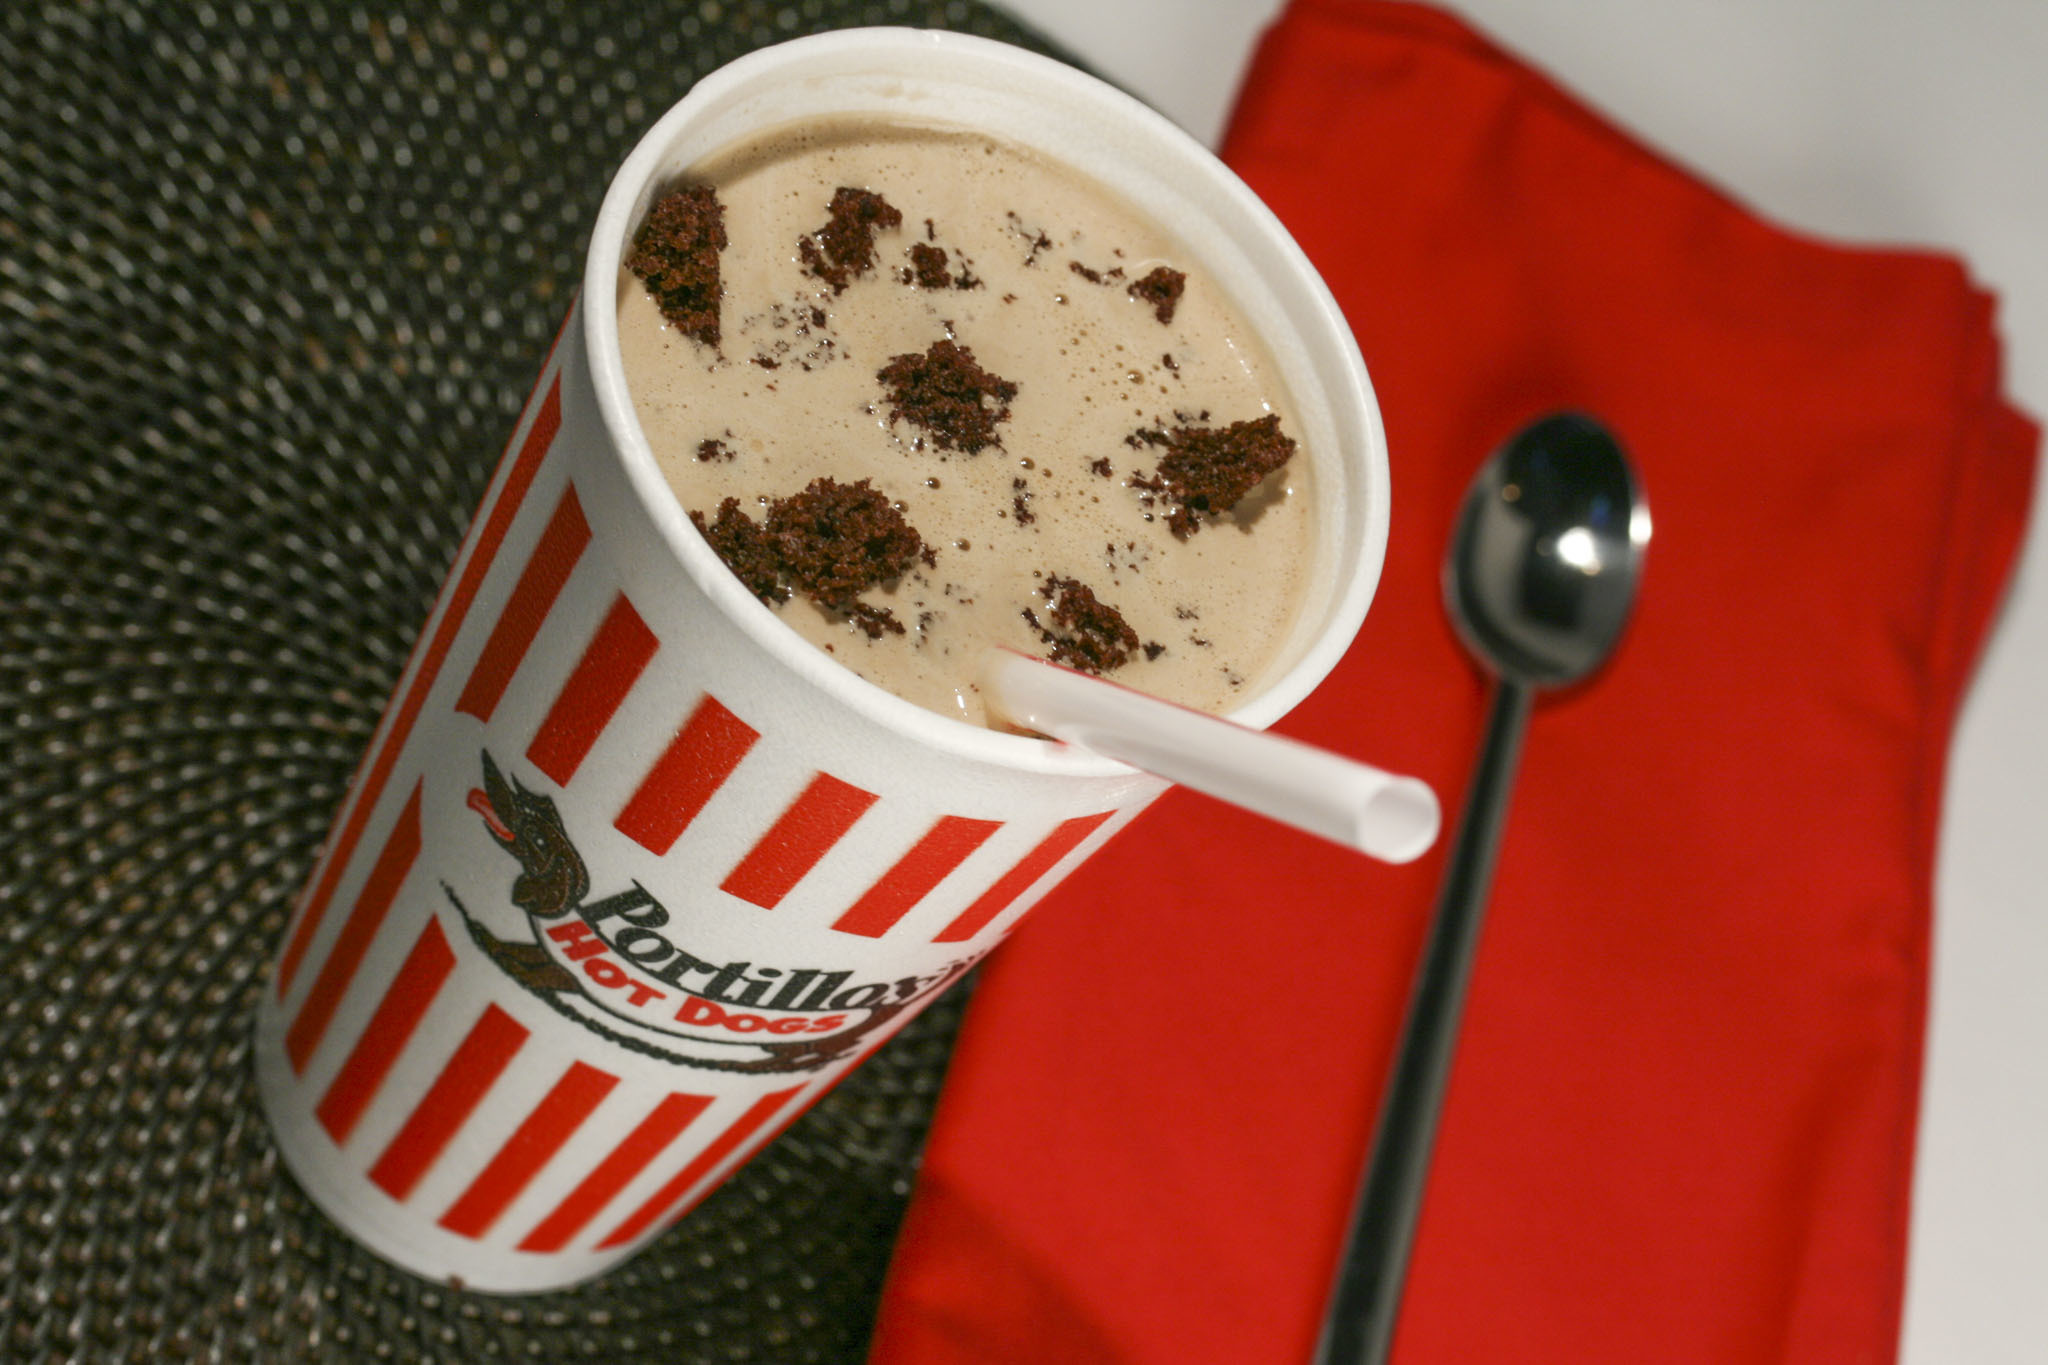 Chocolate Cake Shake at Portillo's, $3.25